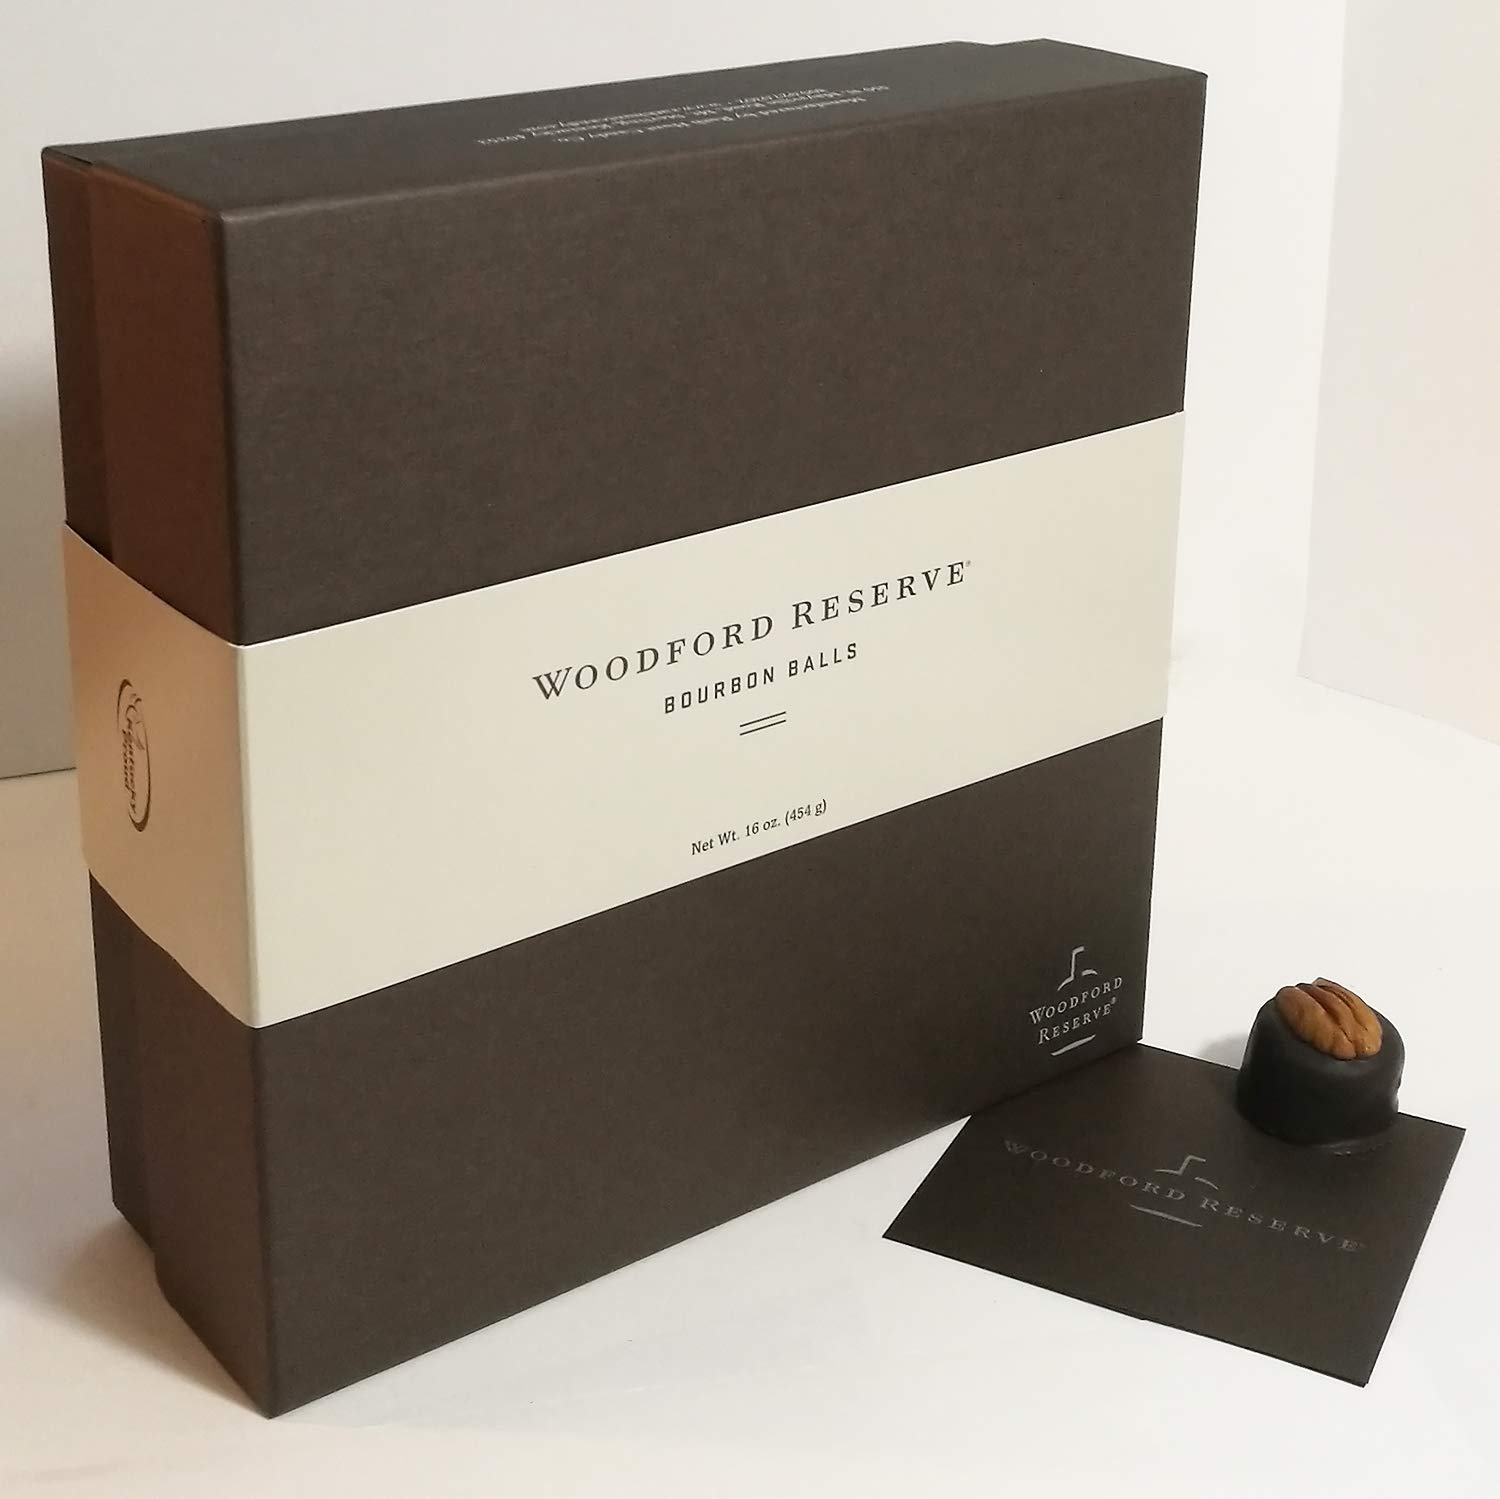 Woodford Reserve Bourbon Ball Gift Box, 32 Candies per box, delicious and perfect for holiday gifts by Woodford Reserve